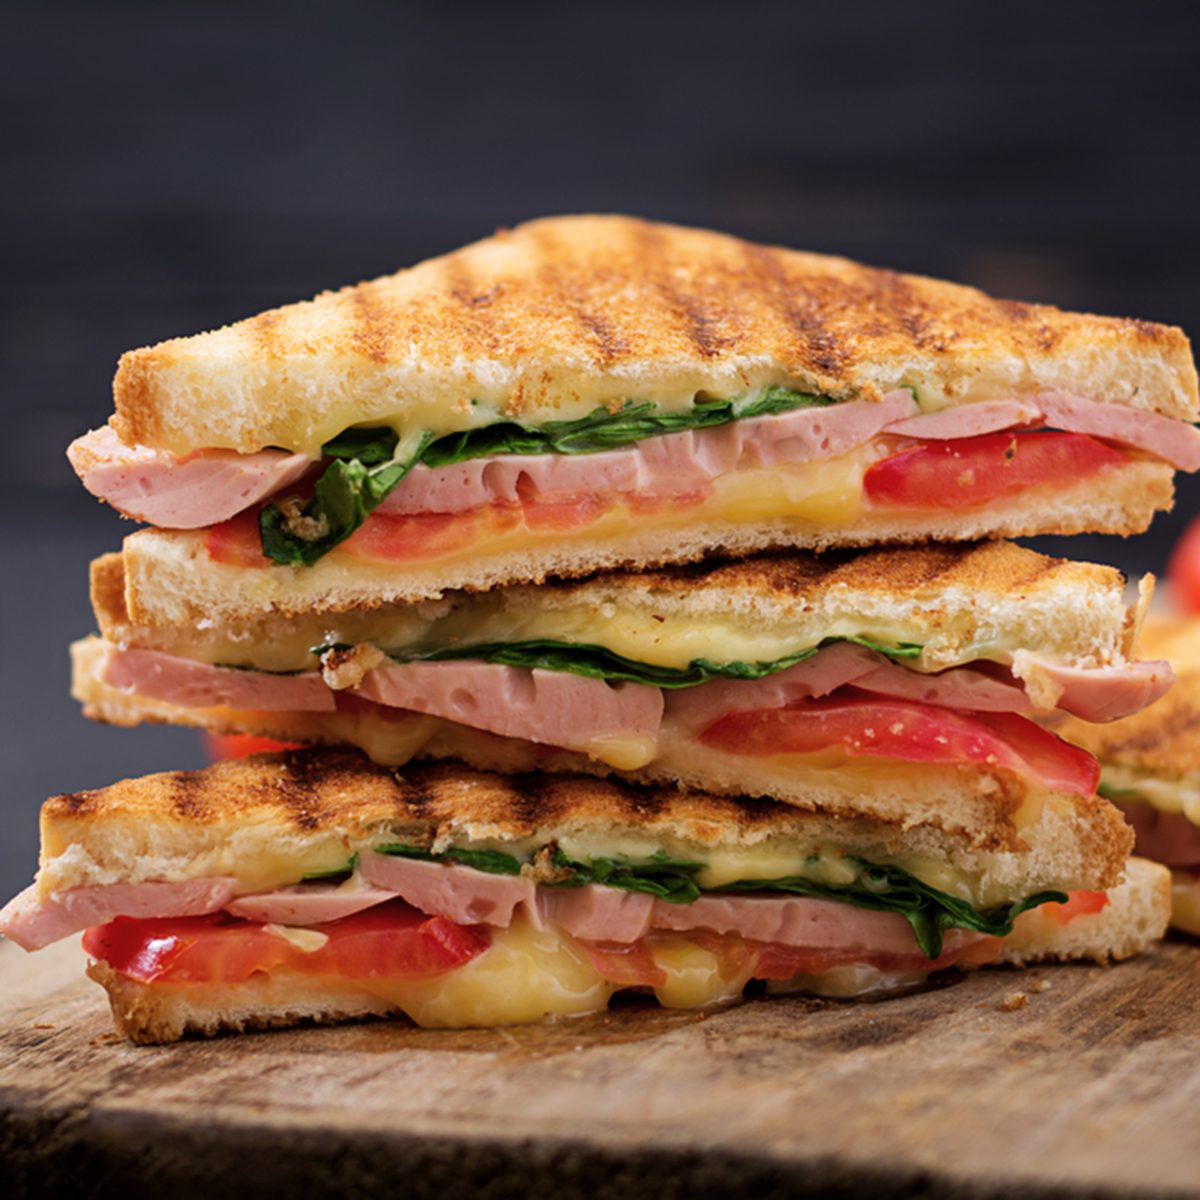 Panini sandwiches stacked together